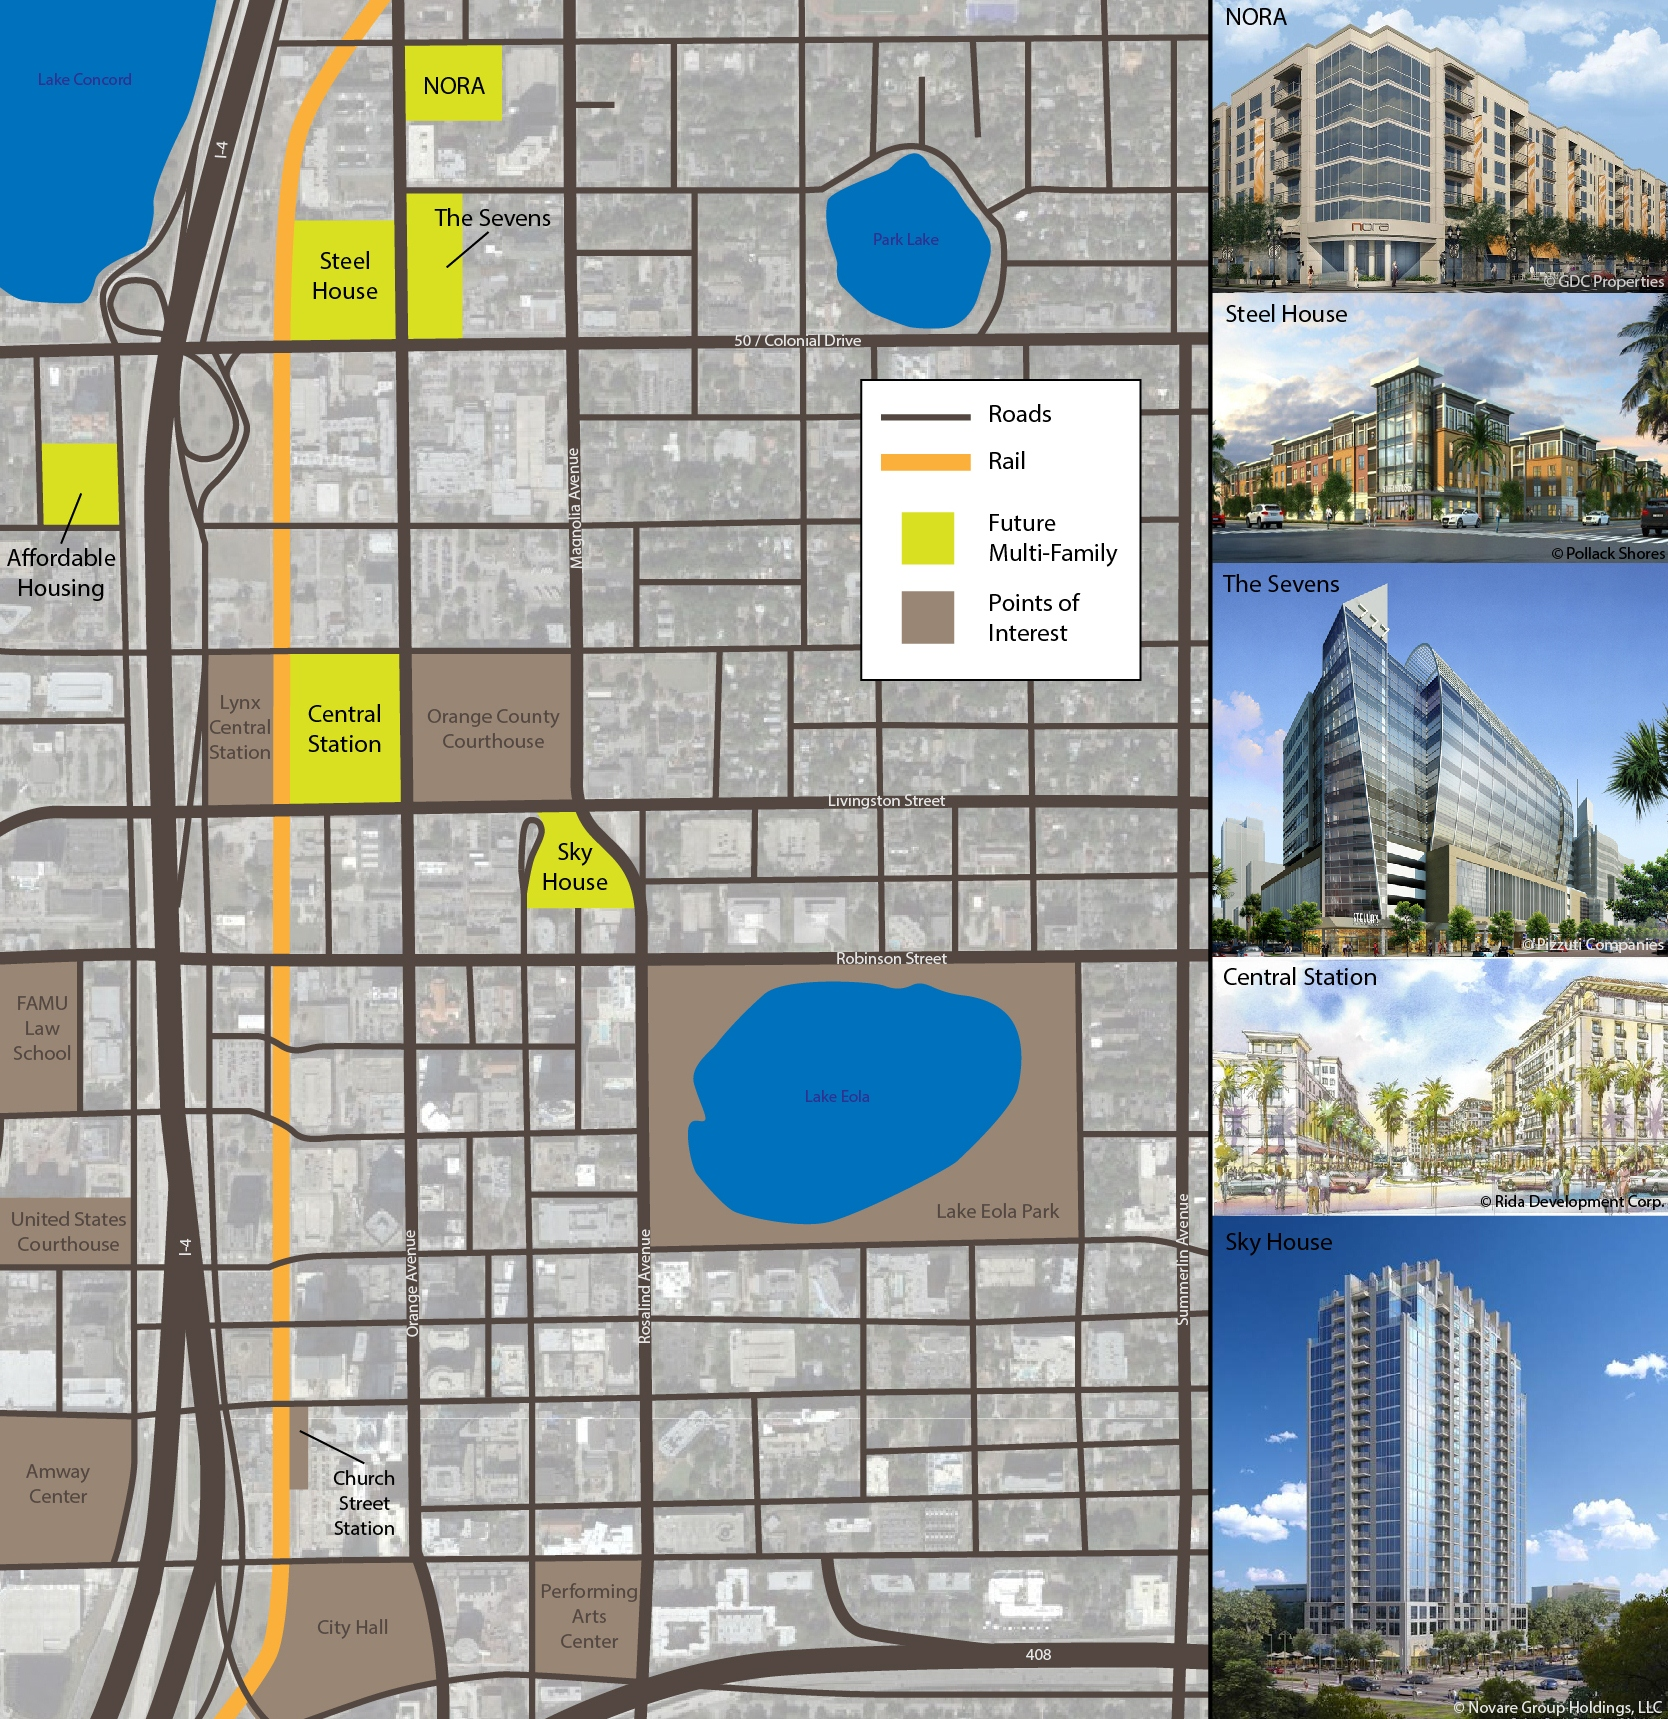 Downtown Orlando apartments and points of interest, map by Alex Lenhoff